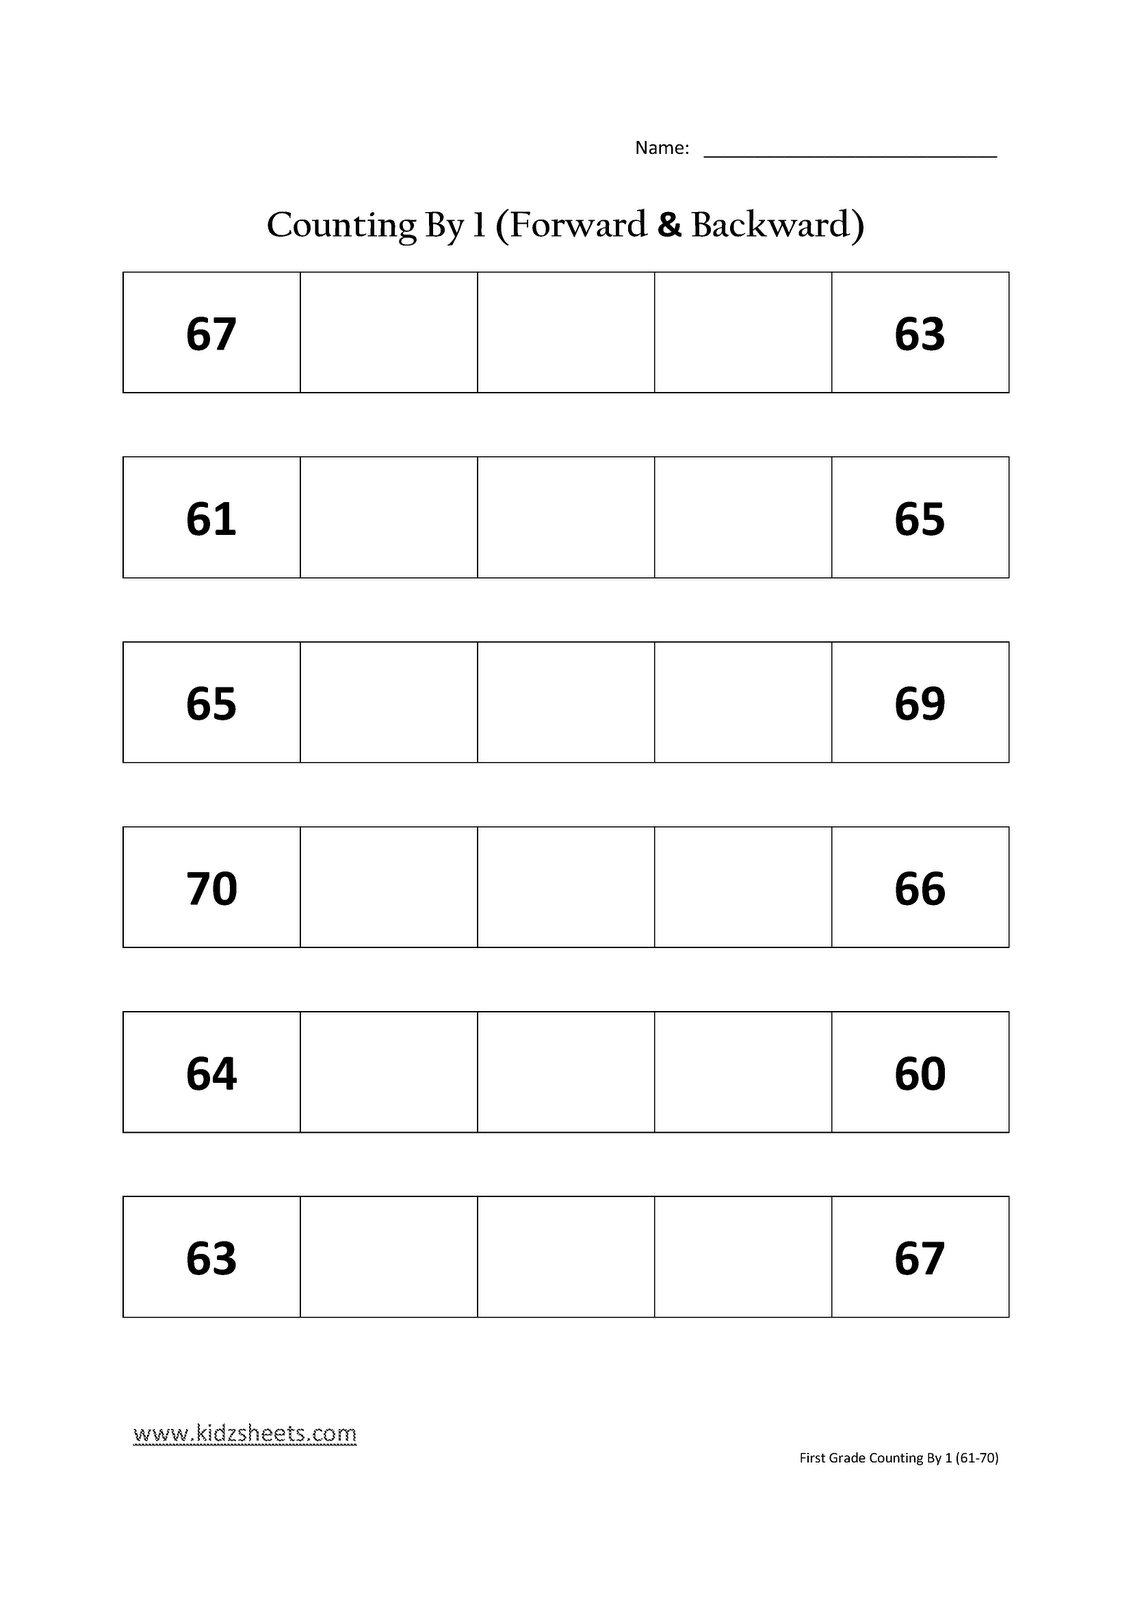 hight resolution of Kidz Worksheets: First Grade Counting by 1 (61-70)